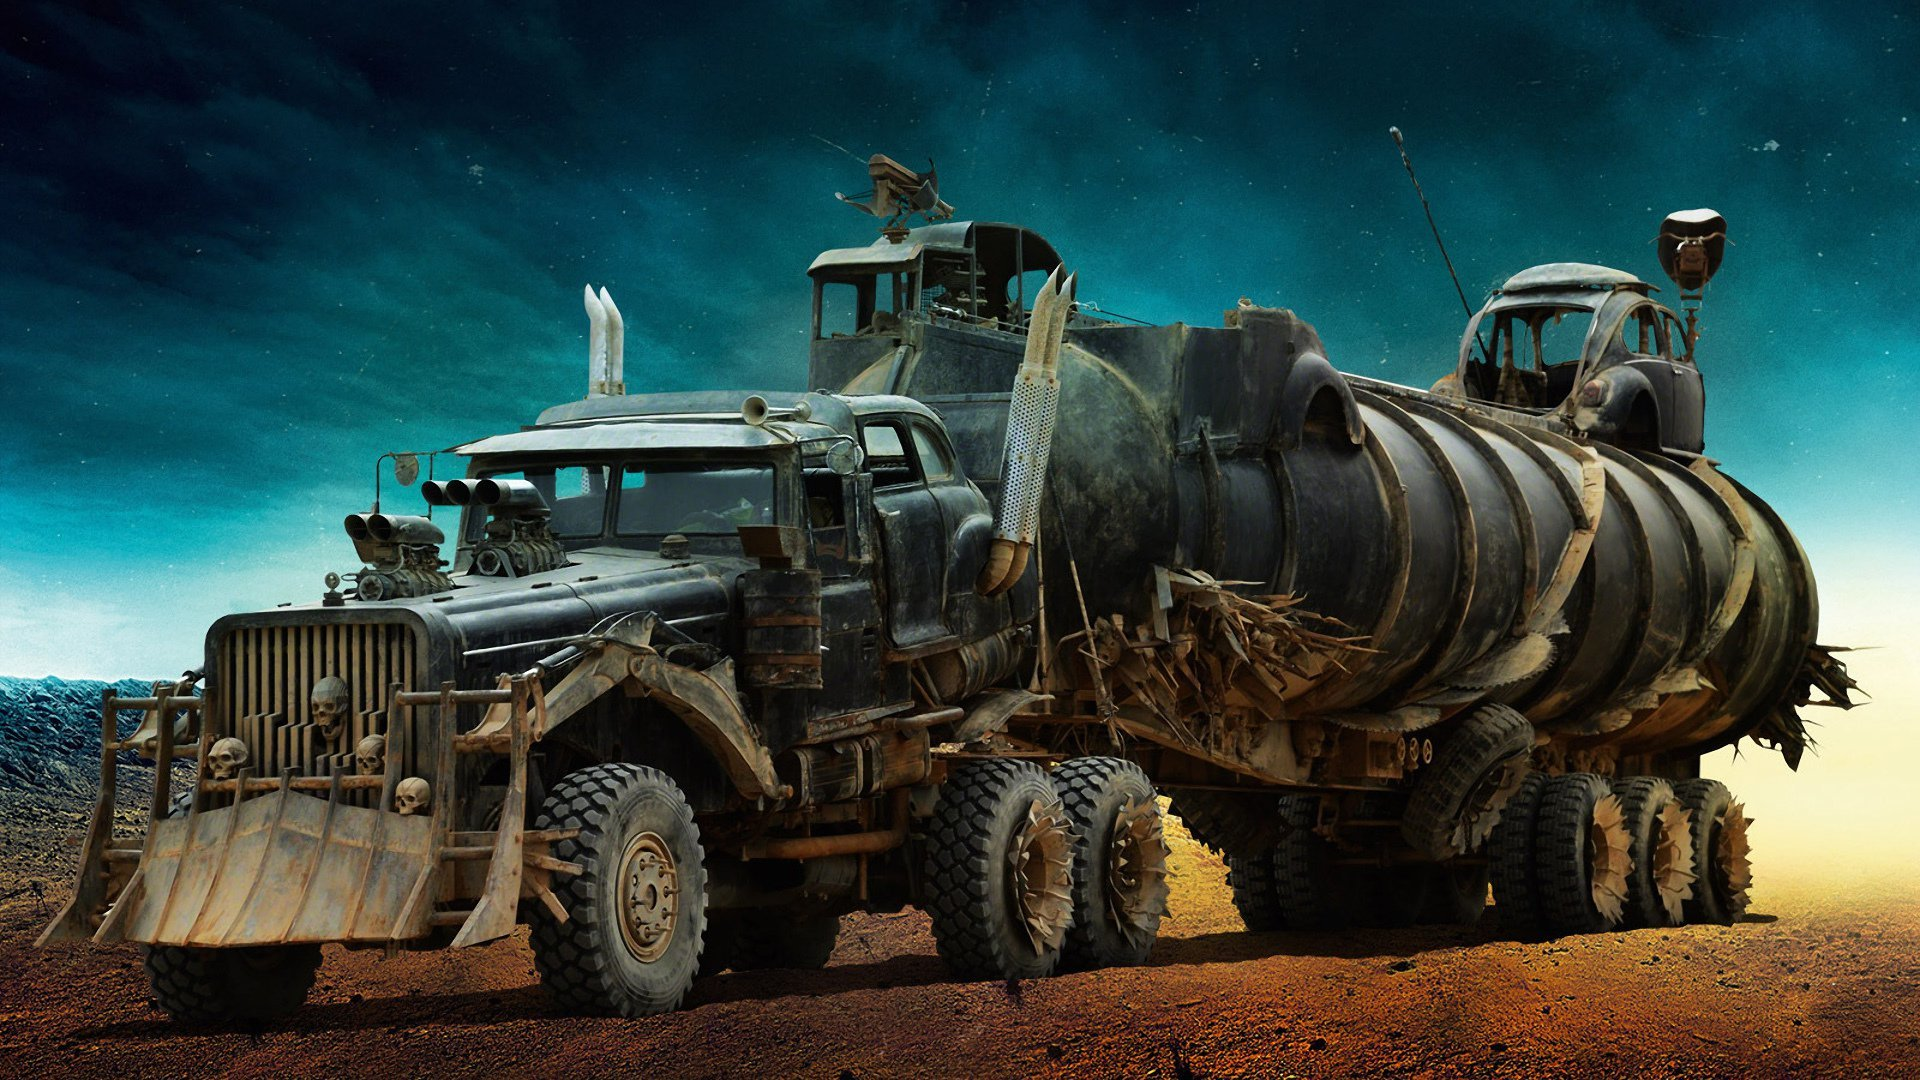 Mad Max Fury Road Wallpapers 1920x1080 Full Hd 1080p Desktop Backgrounds